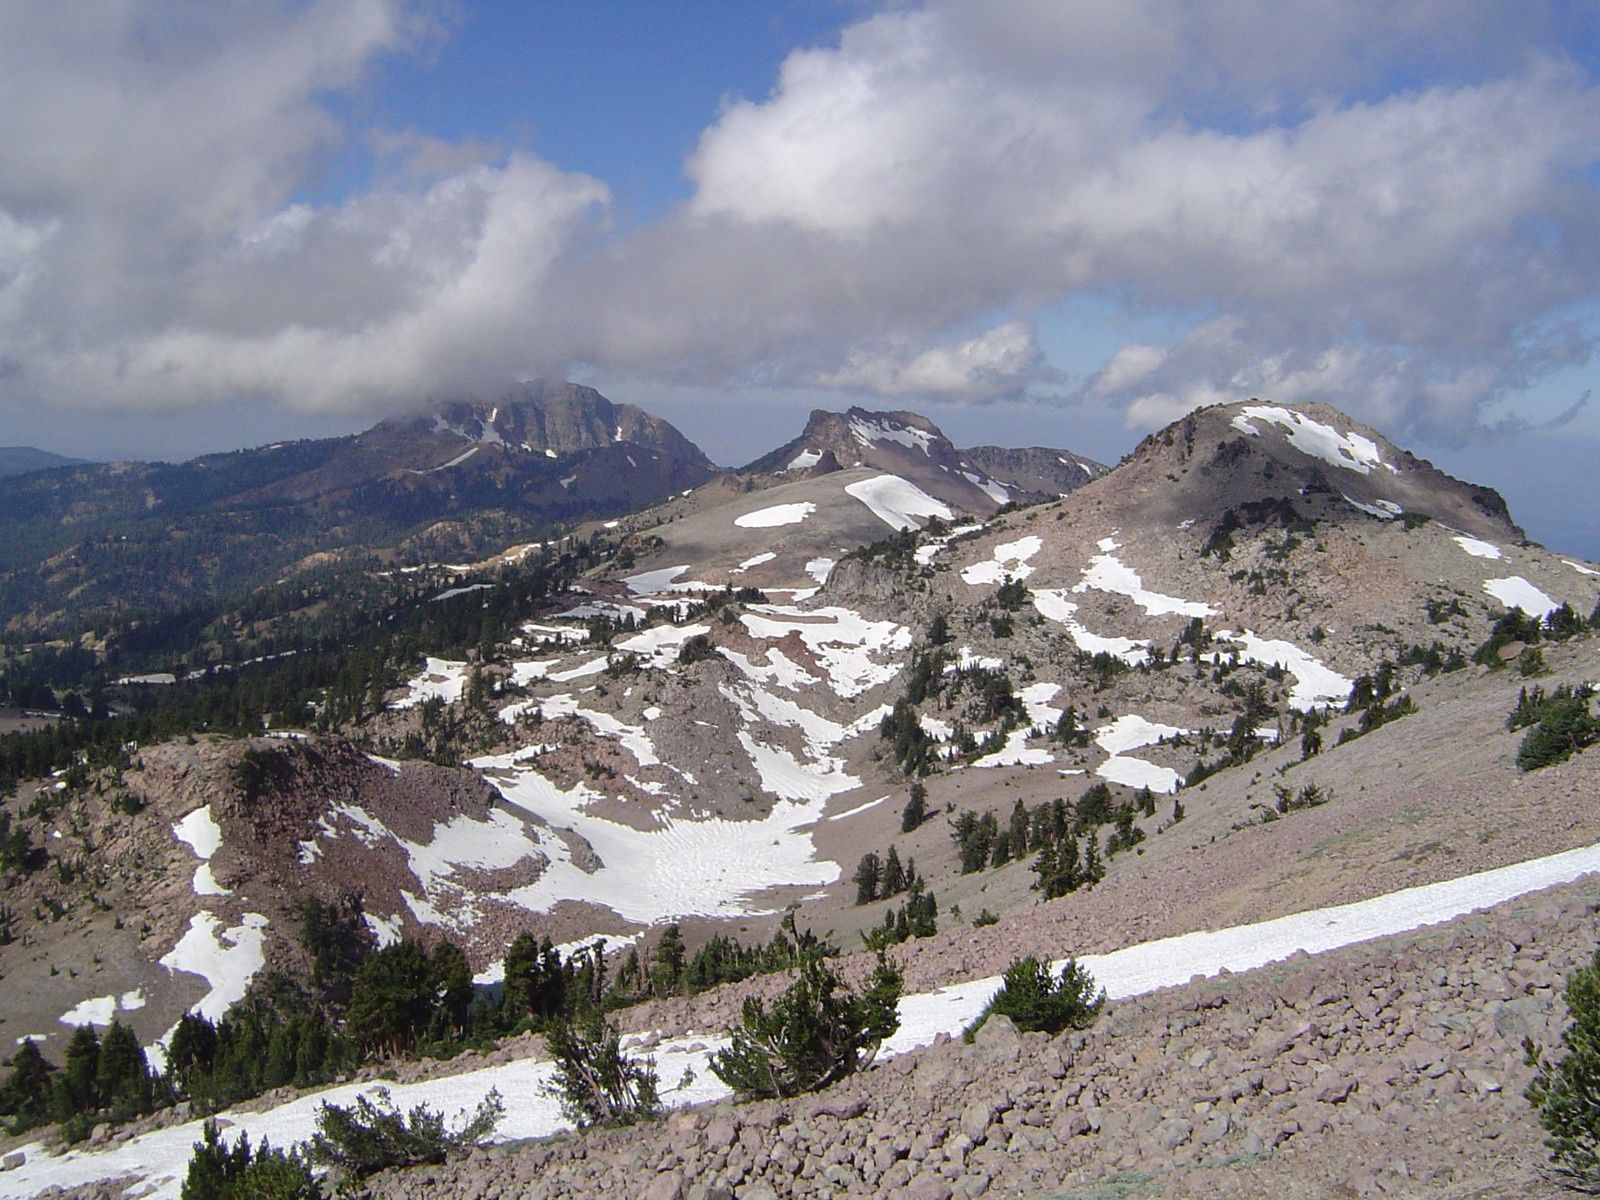 The remains of Tehama : from left to right , Brokeof Mt, Mt Driller and Eagle Peak